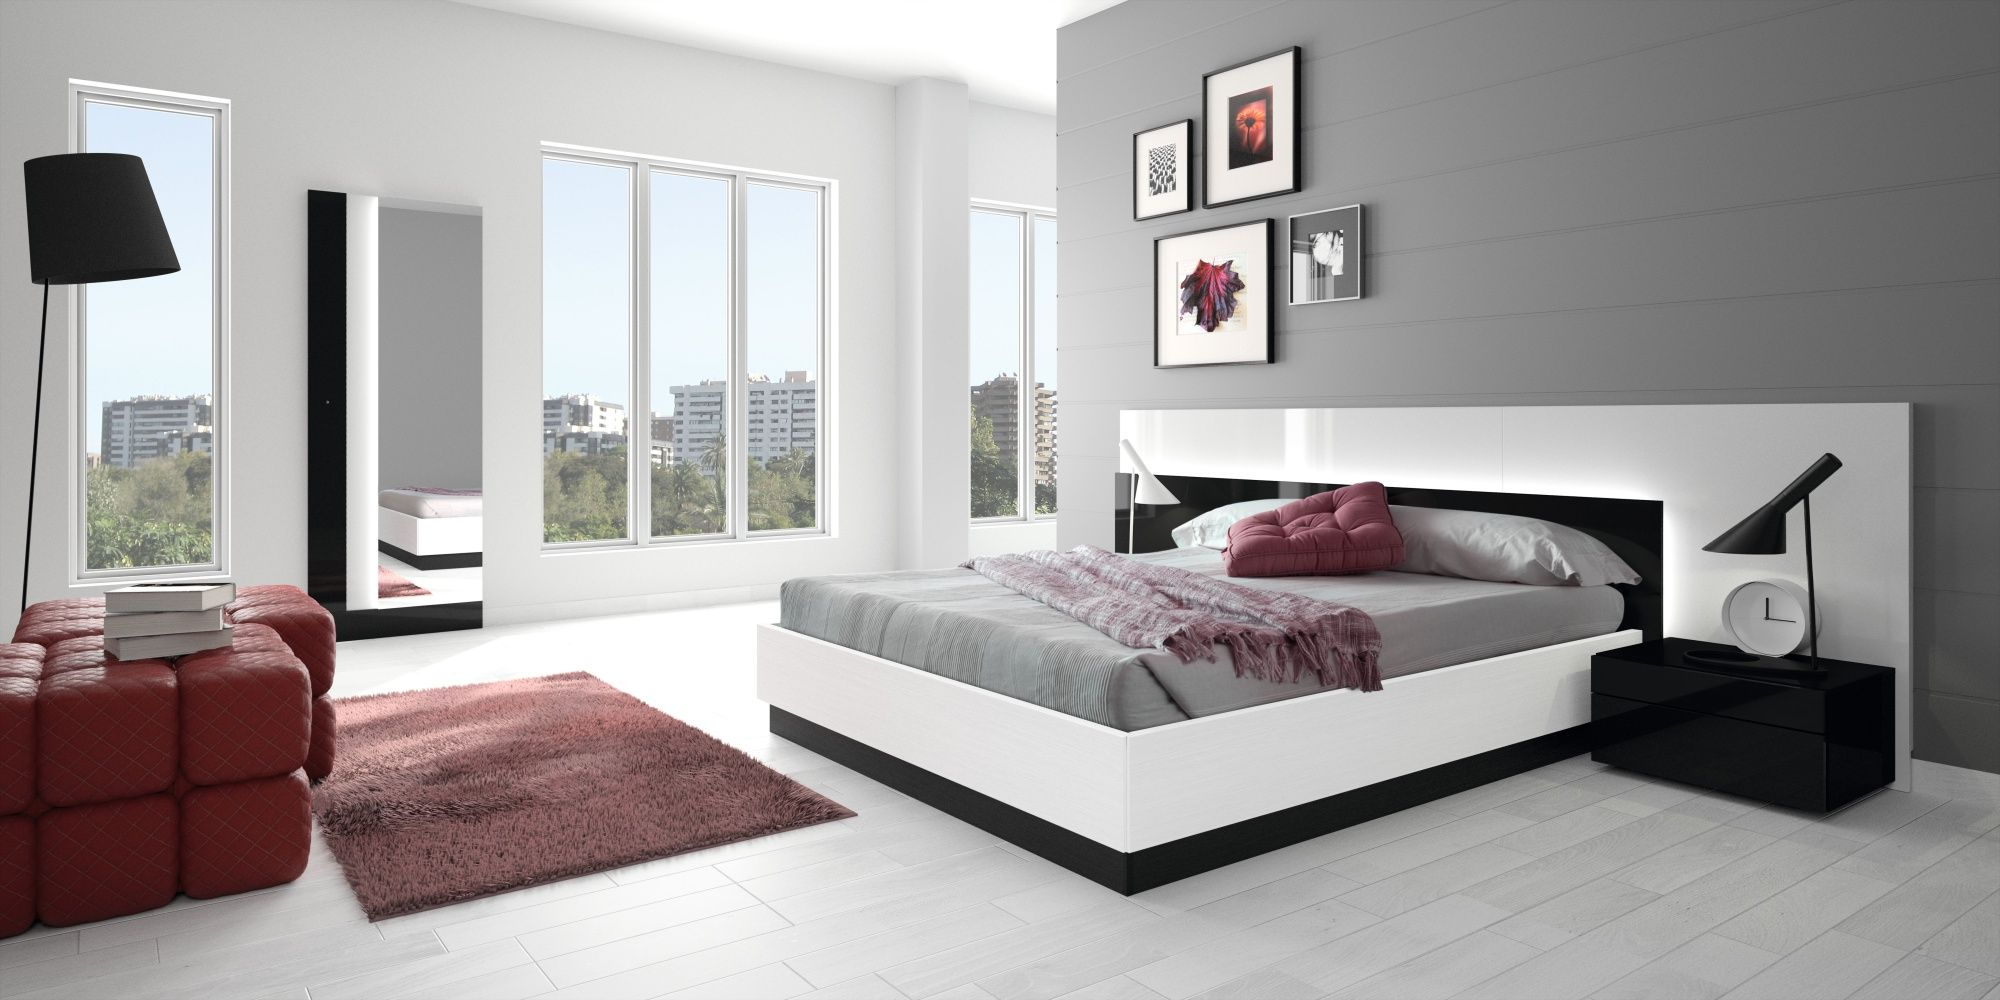 30 awesome bedroom furniture design ideas | bedrooms and modern